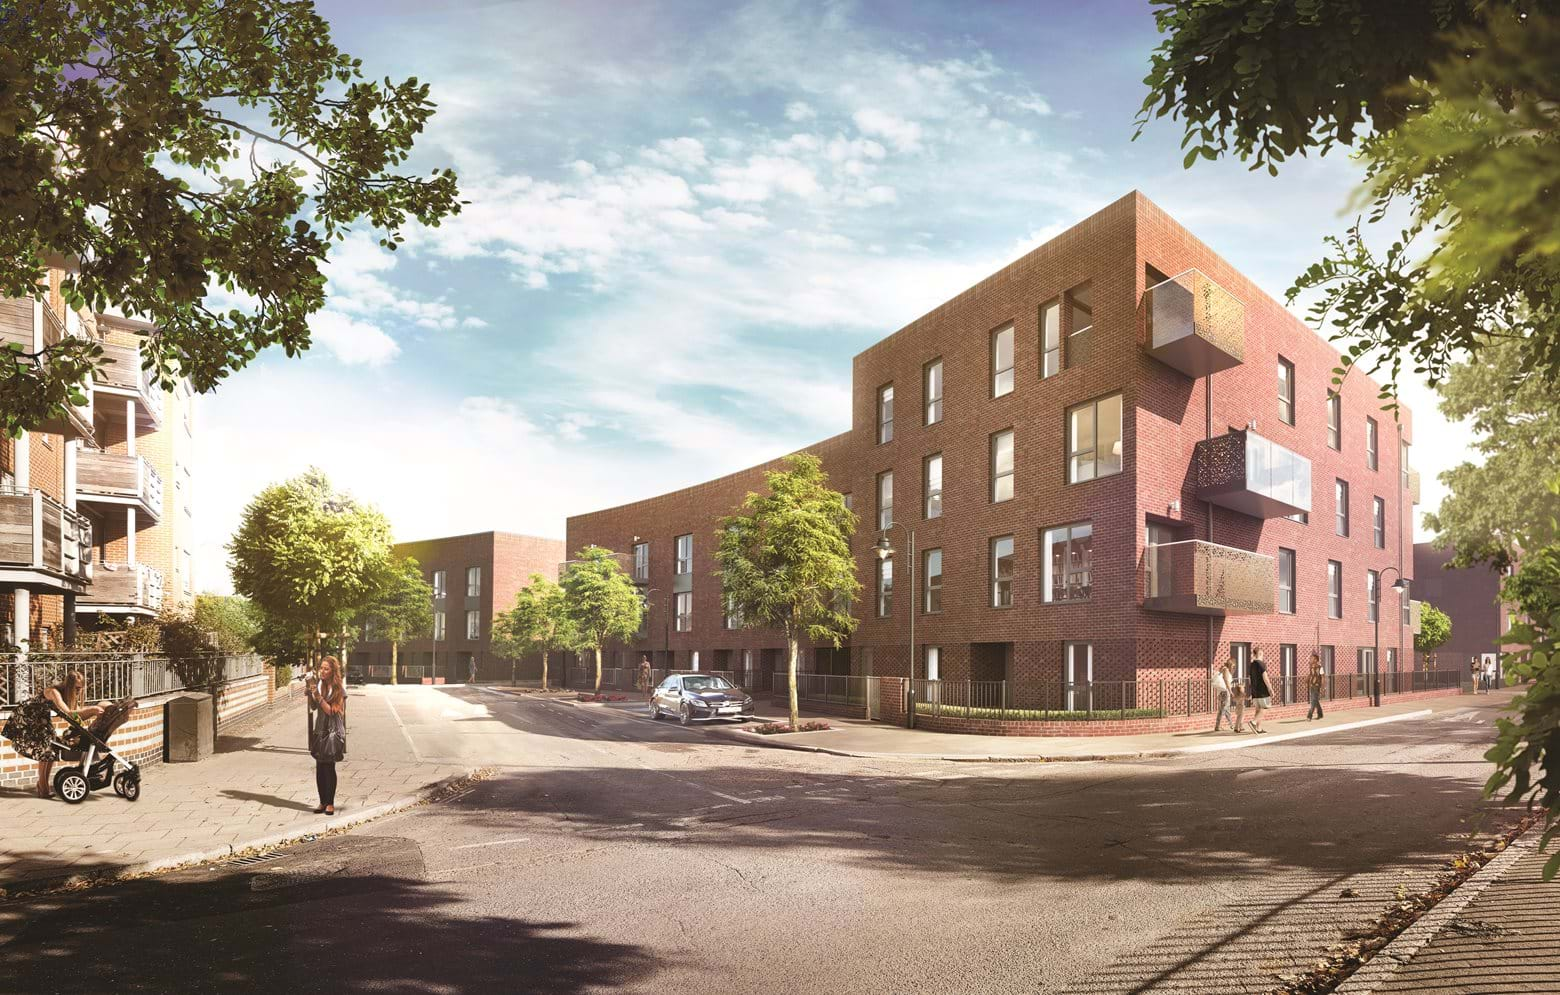 The Elmington, a selection of Shared Ownership homes in Camberwell